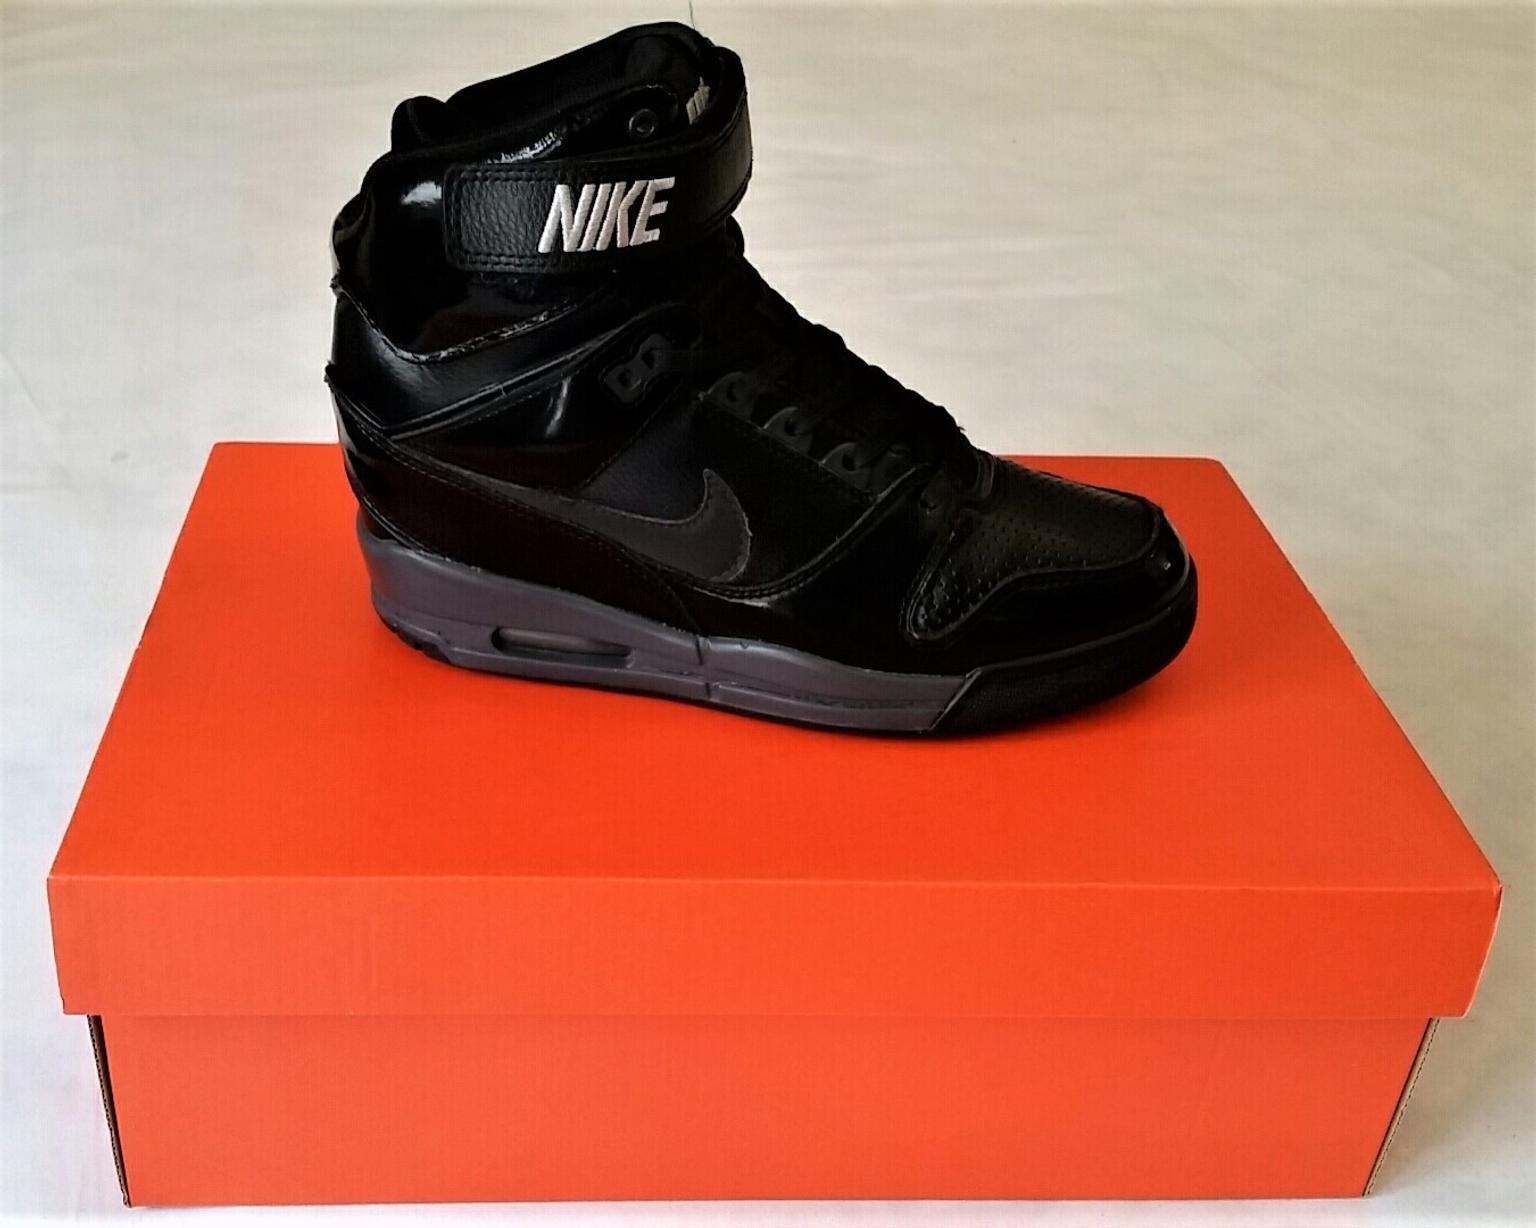 Scarpa nike con zeppa n36 in 00165 Roma for €30.00 for sale